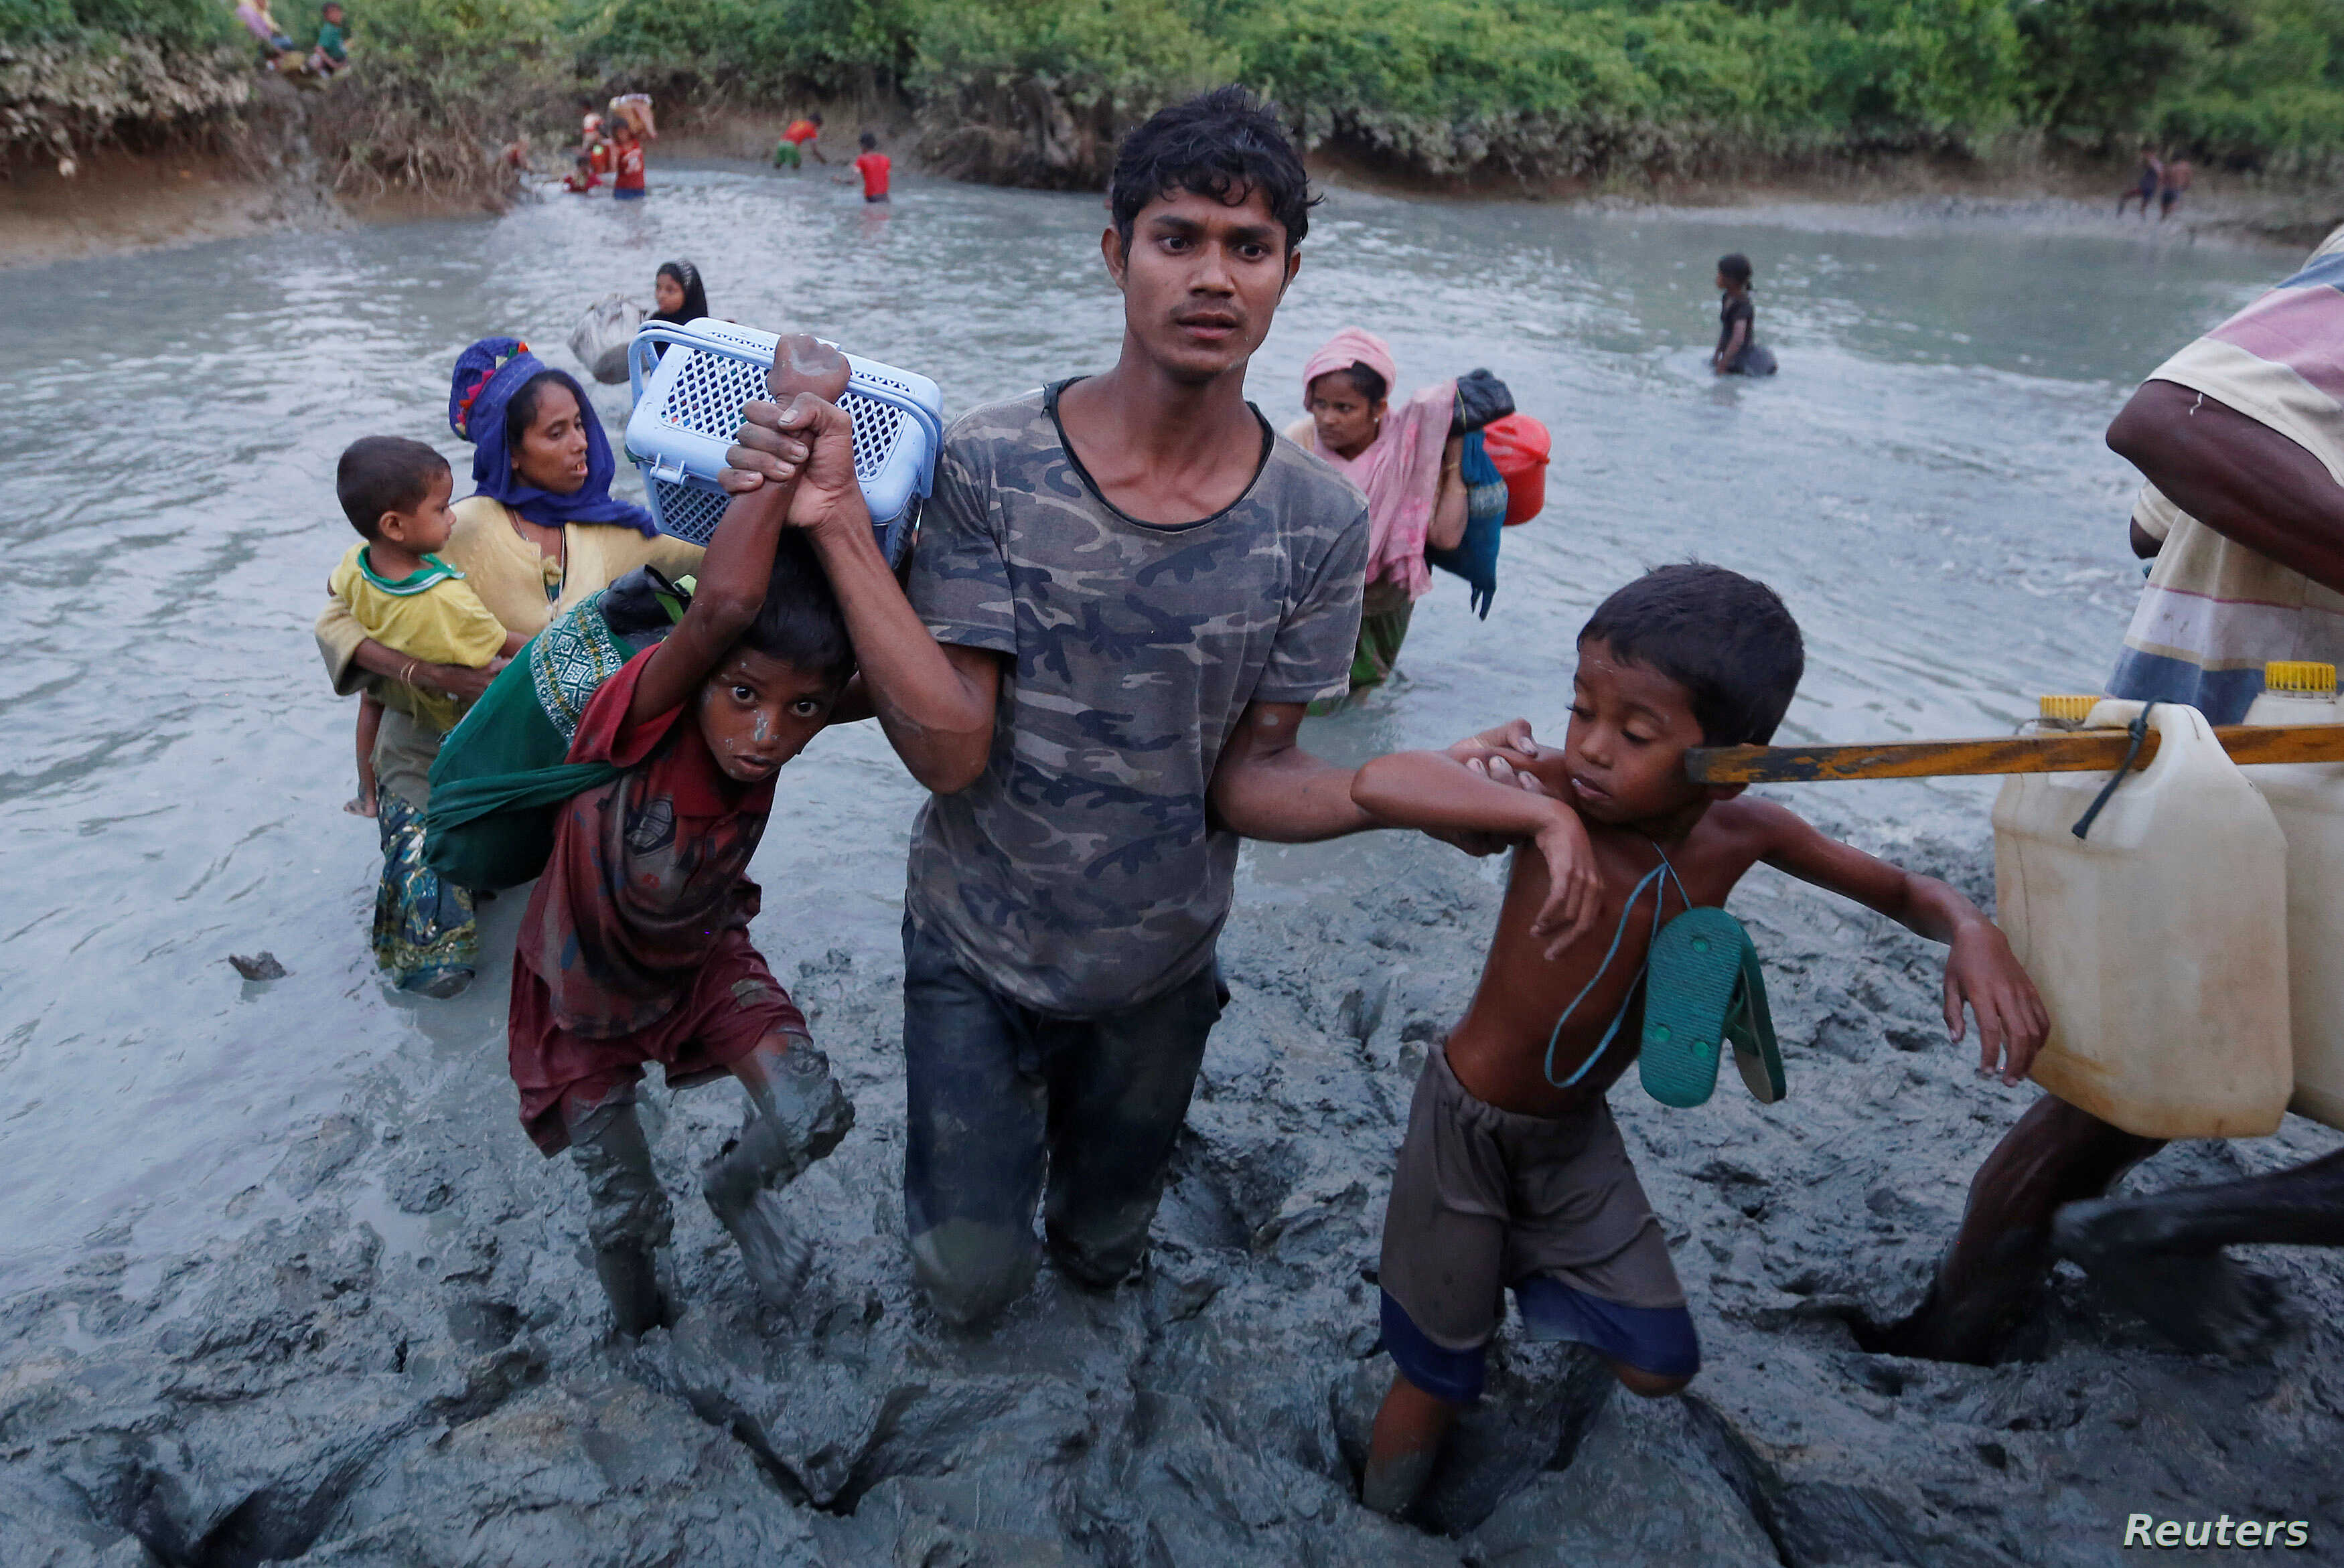 A Rohingya refugee man helps children through the mud after crossing the Naf River at the Bangladesh-Myanmar border in Palong Khali, near Cox's Bazar, Bangladesh, Nov. 1, 2017.